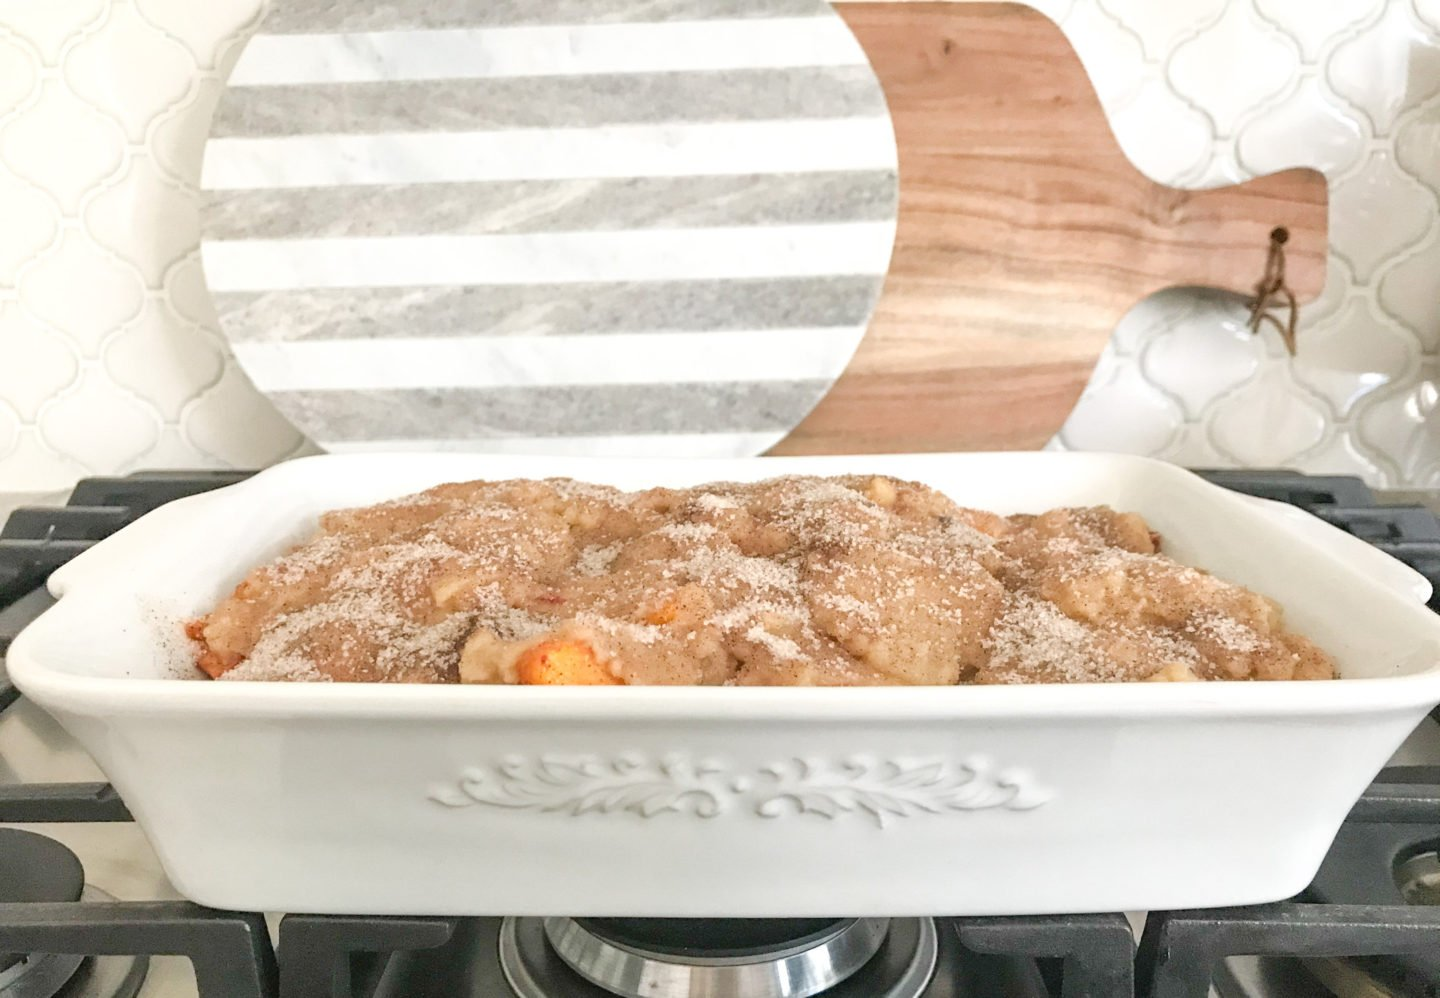 Remove peaches from oven, and drop spoonfuls of the topping over them. Then, sprinkle entire cobbler with the cinnamon and white sugar mixture noted below.